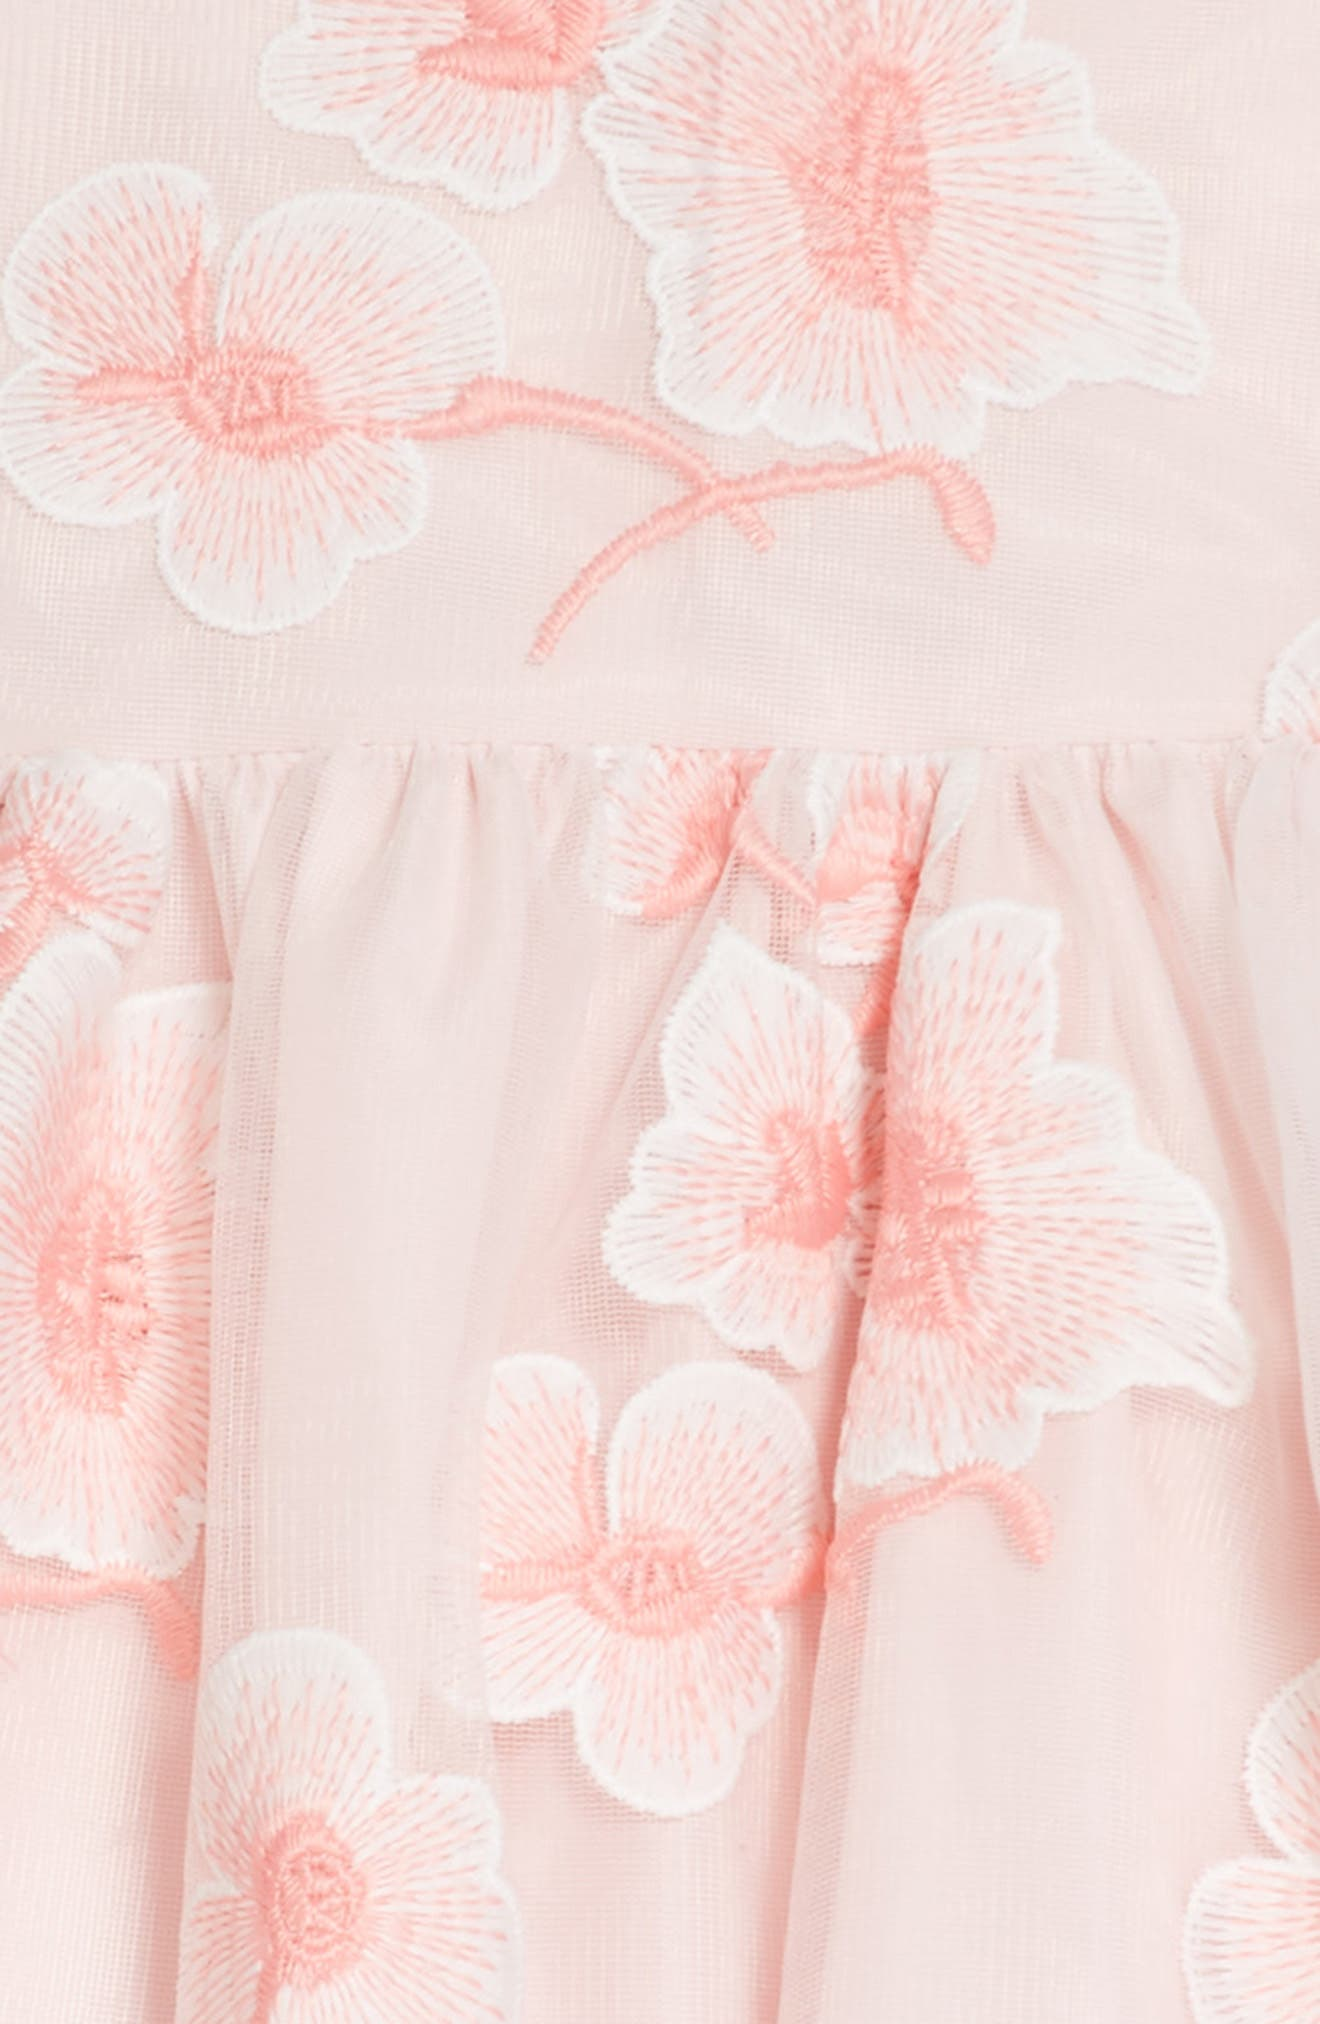 Floral Embroidered Dress,                             Alternate thumbnail 3, color,                             690